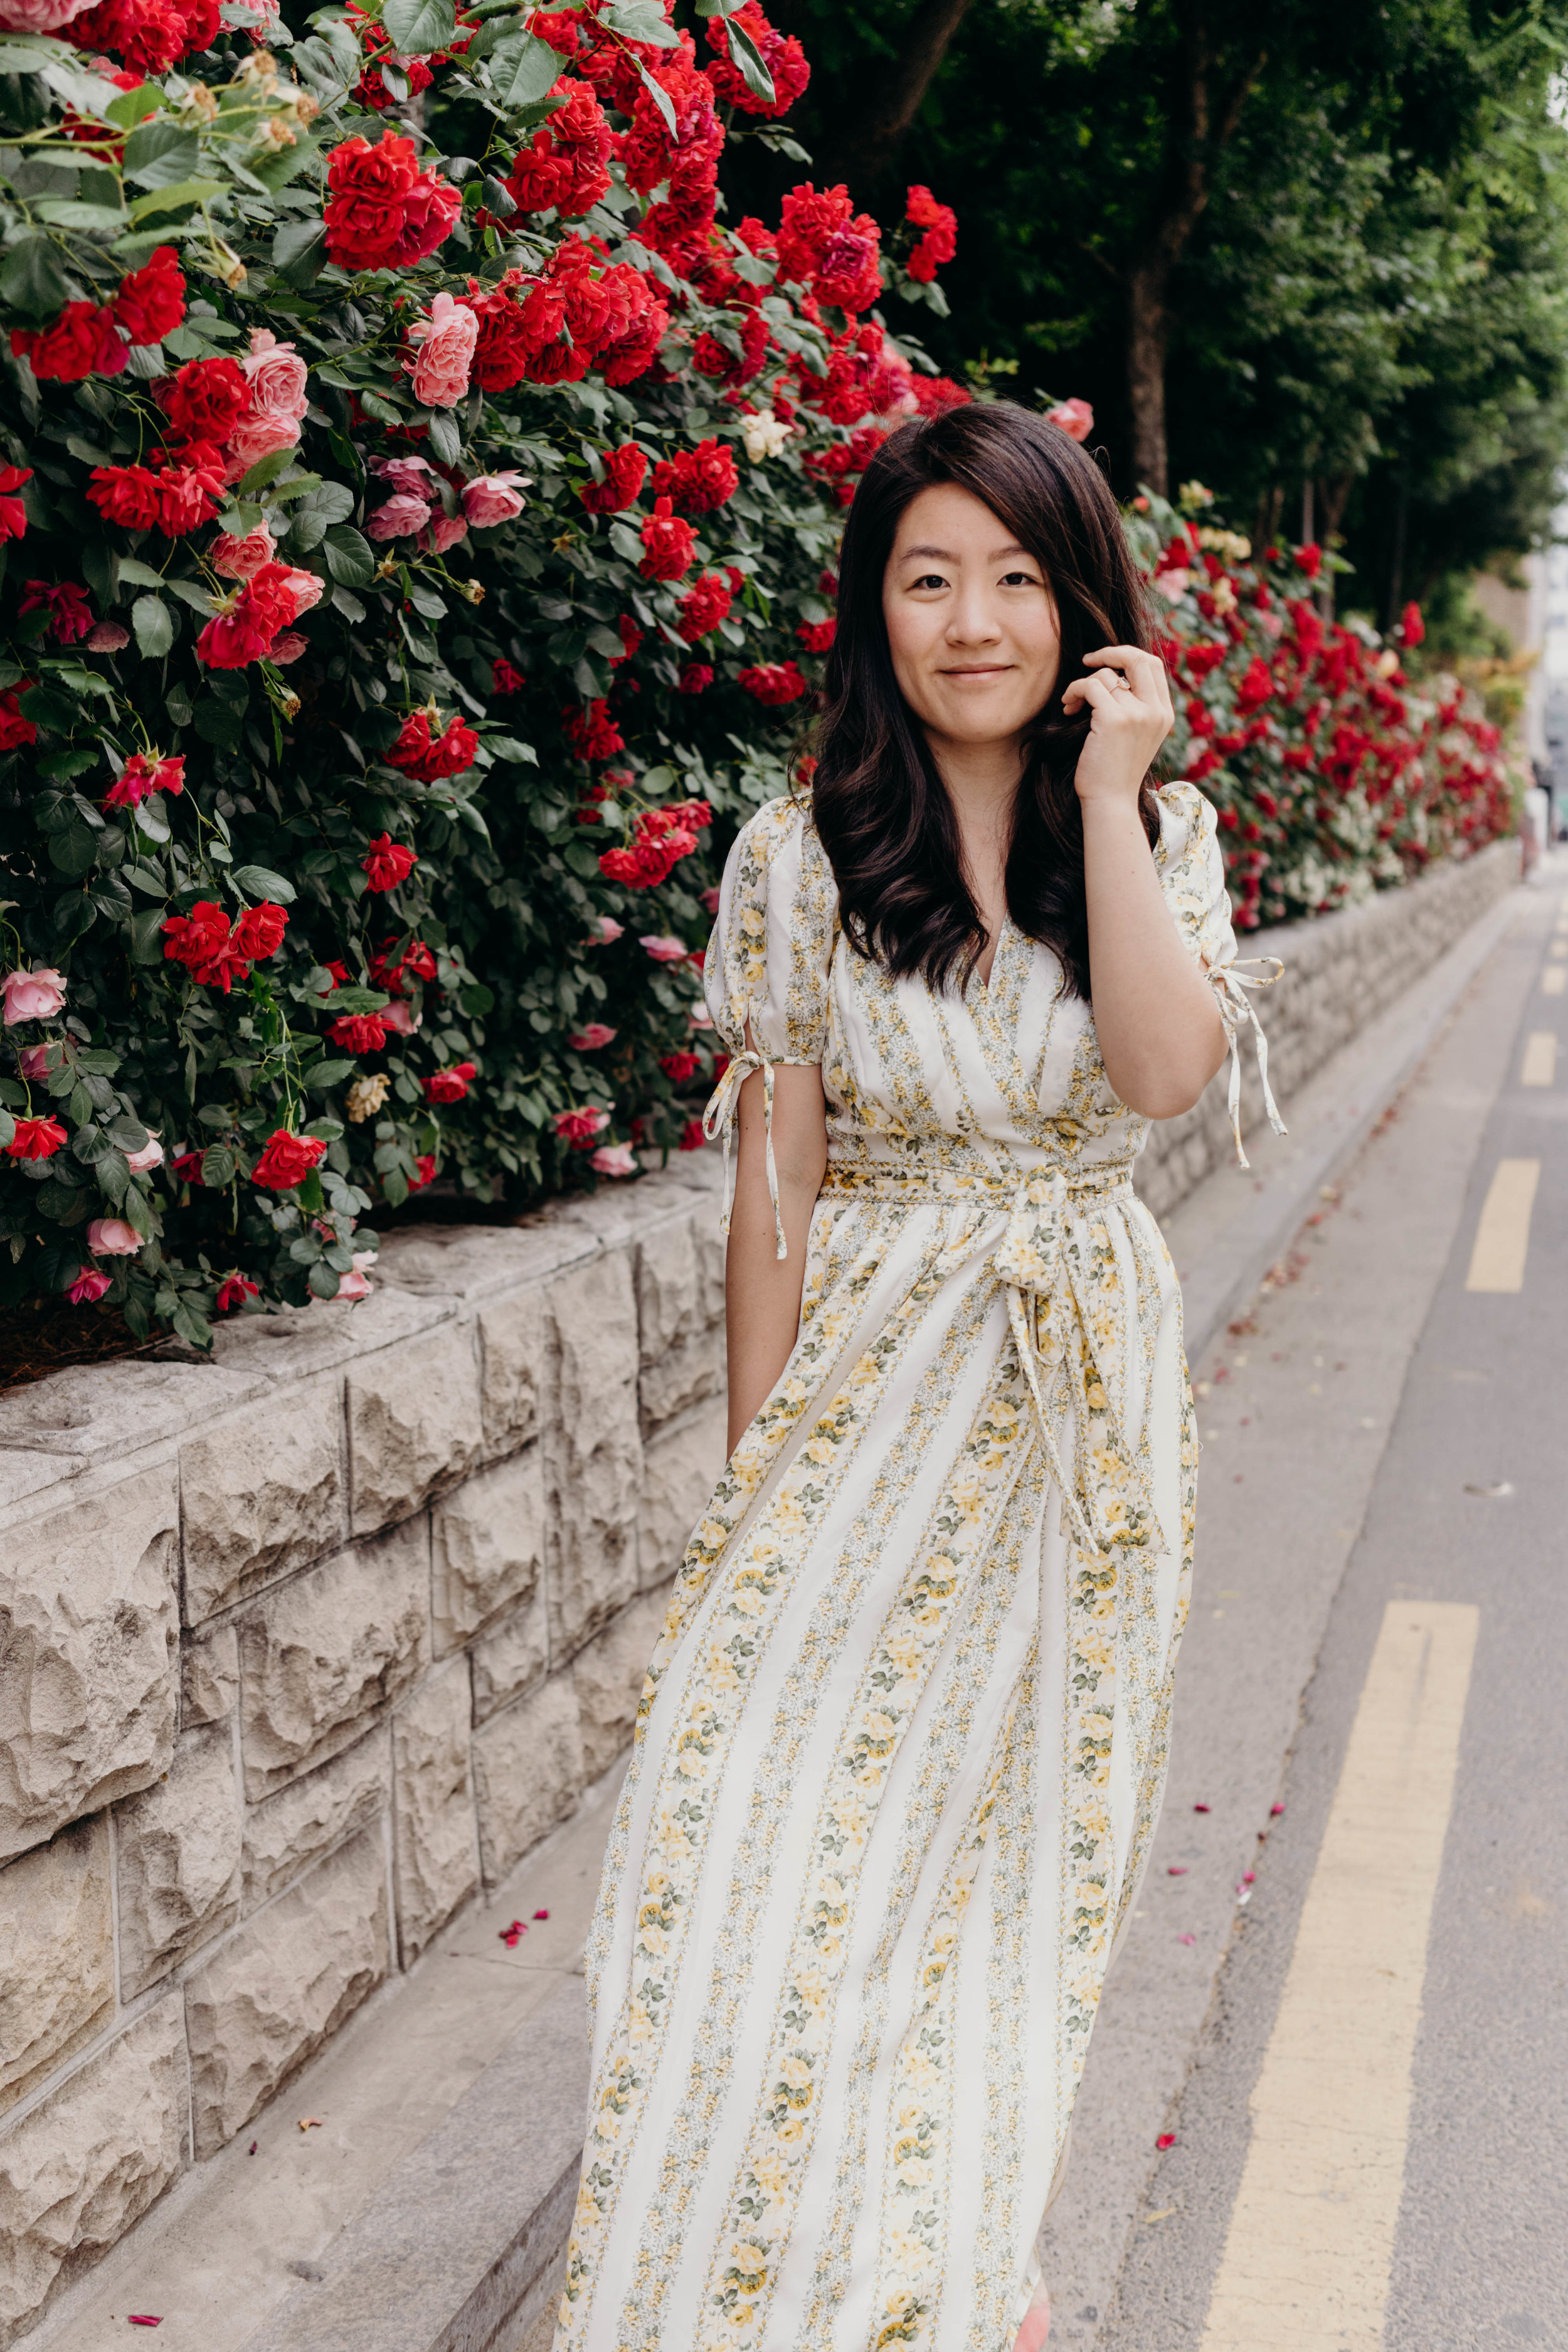 The Dress I Wore Most Last Semester and an Exciting Sale | On the Street Where We Live ( aretherelilactrees.com )  Gal Meets Glam Collection, Imogene dress, Gyeongui Line Forest Park, roses, Yeonnam-dong, Seoul, South Korea